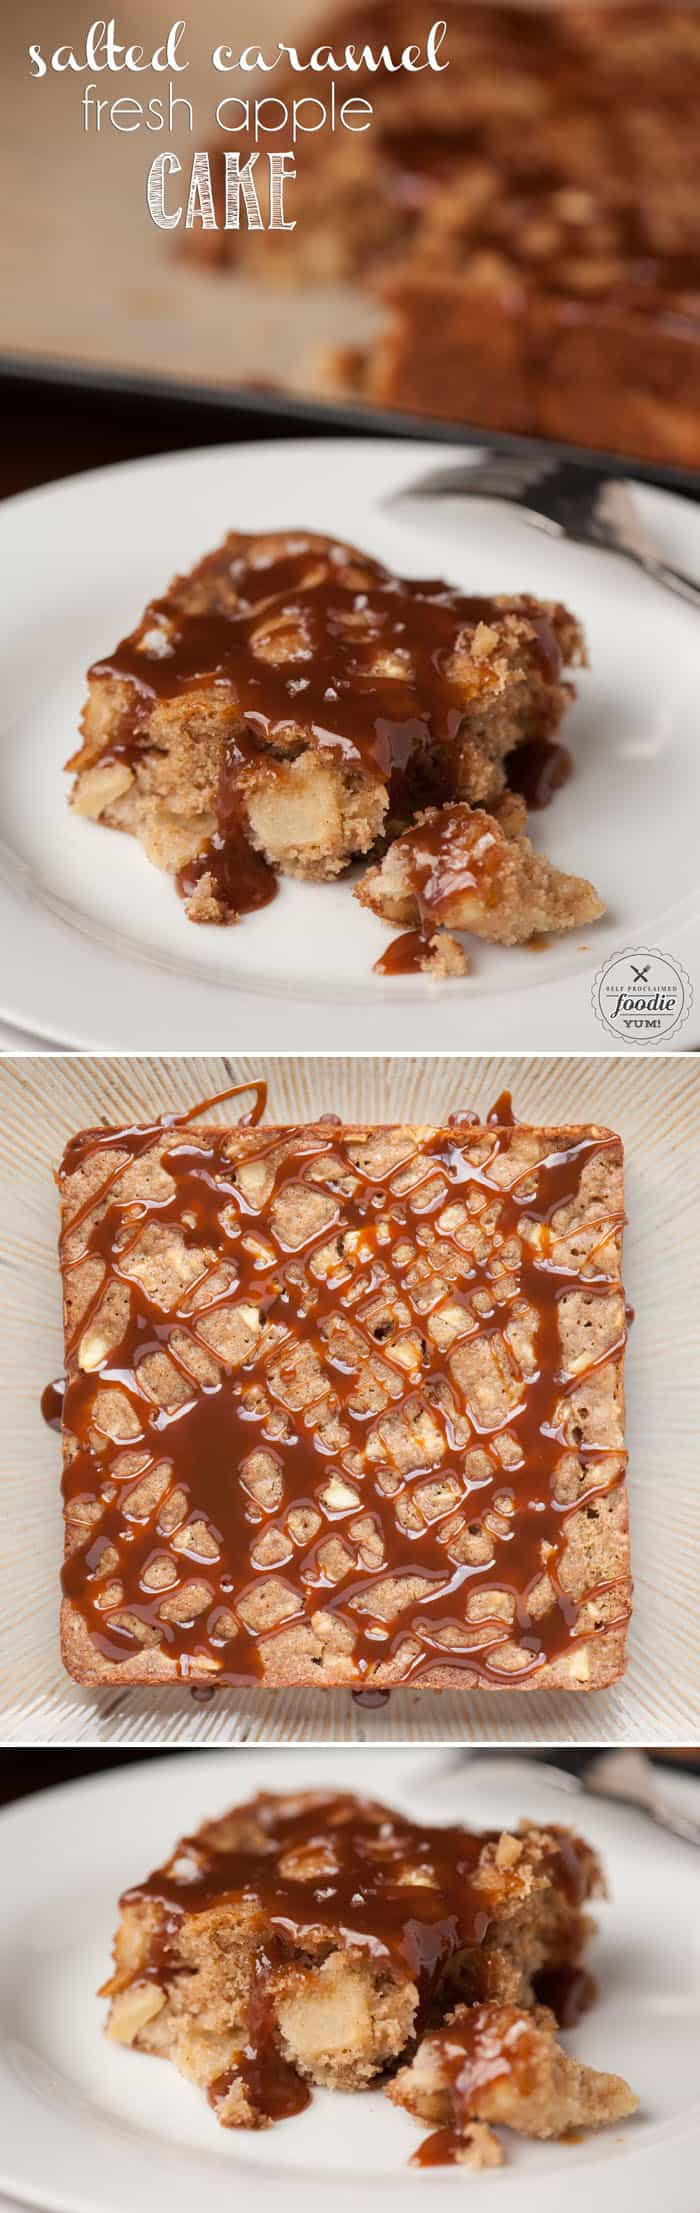 This super moist and delicious Salted Caramel Fresh Apple Cake is loaded with fresh apple chunks and combines the perfect amount of sweet and spice.